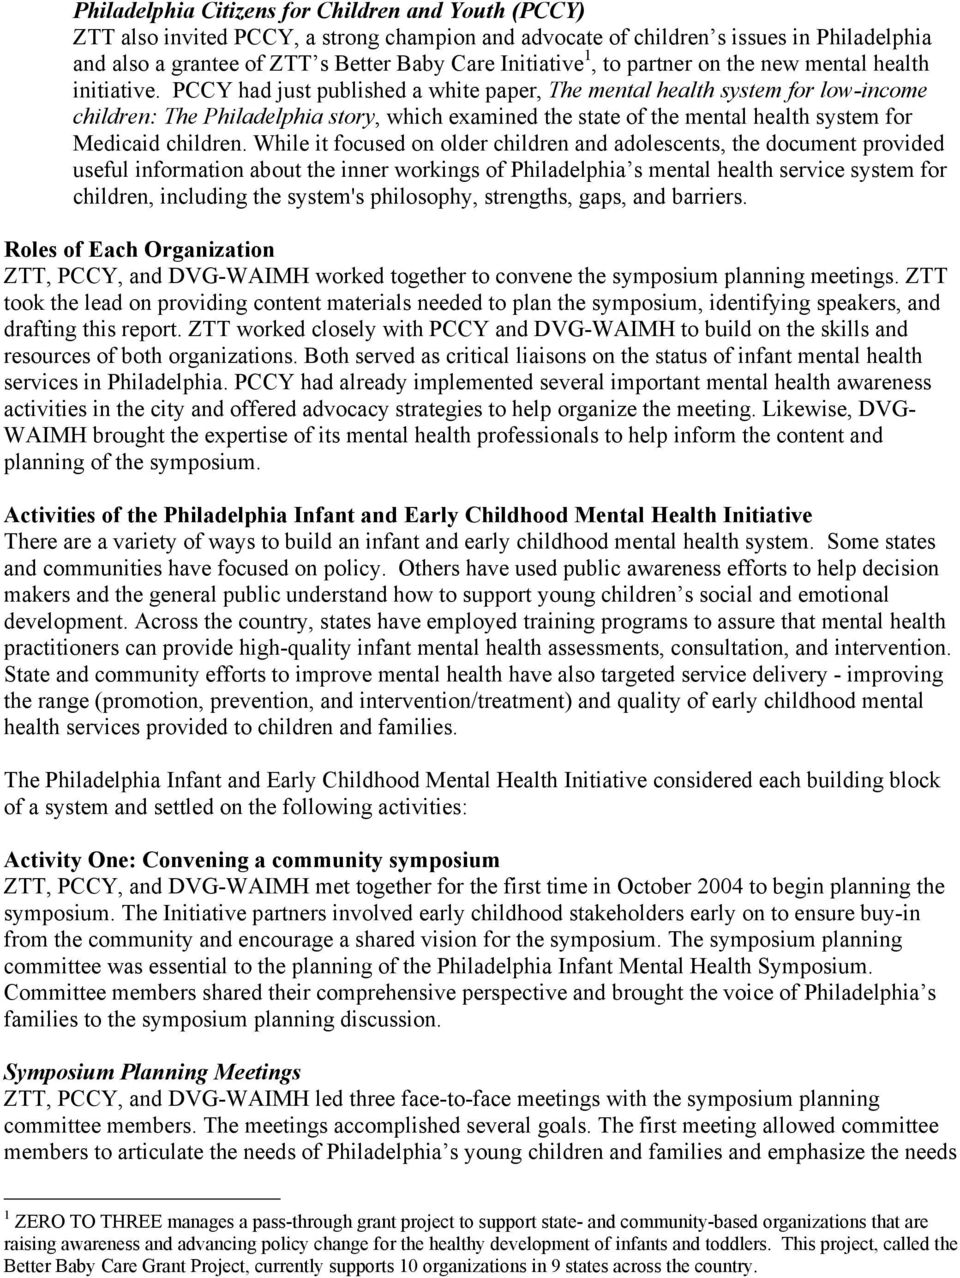 PCCY had just published a white paper, The mental health system for low-income children: The Philadelphia story, which examined the state of the mental health system for Medicaid children.